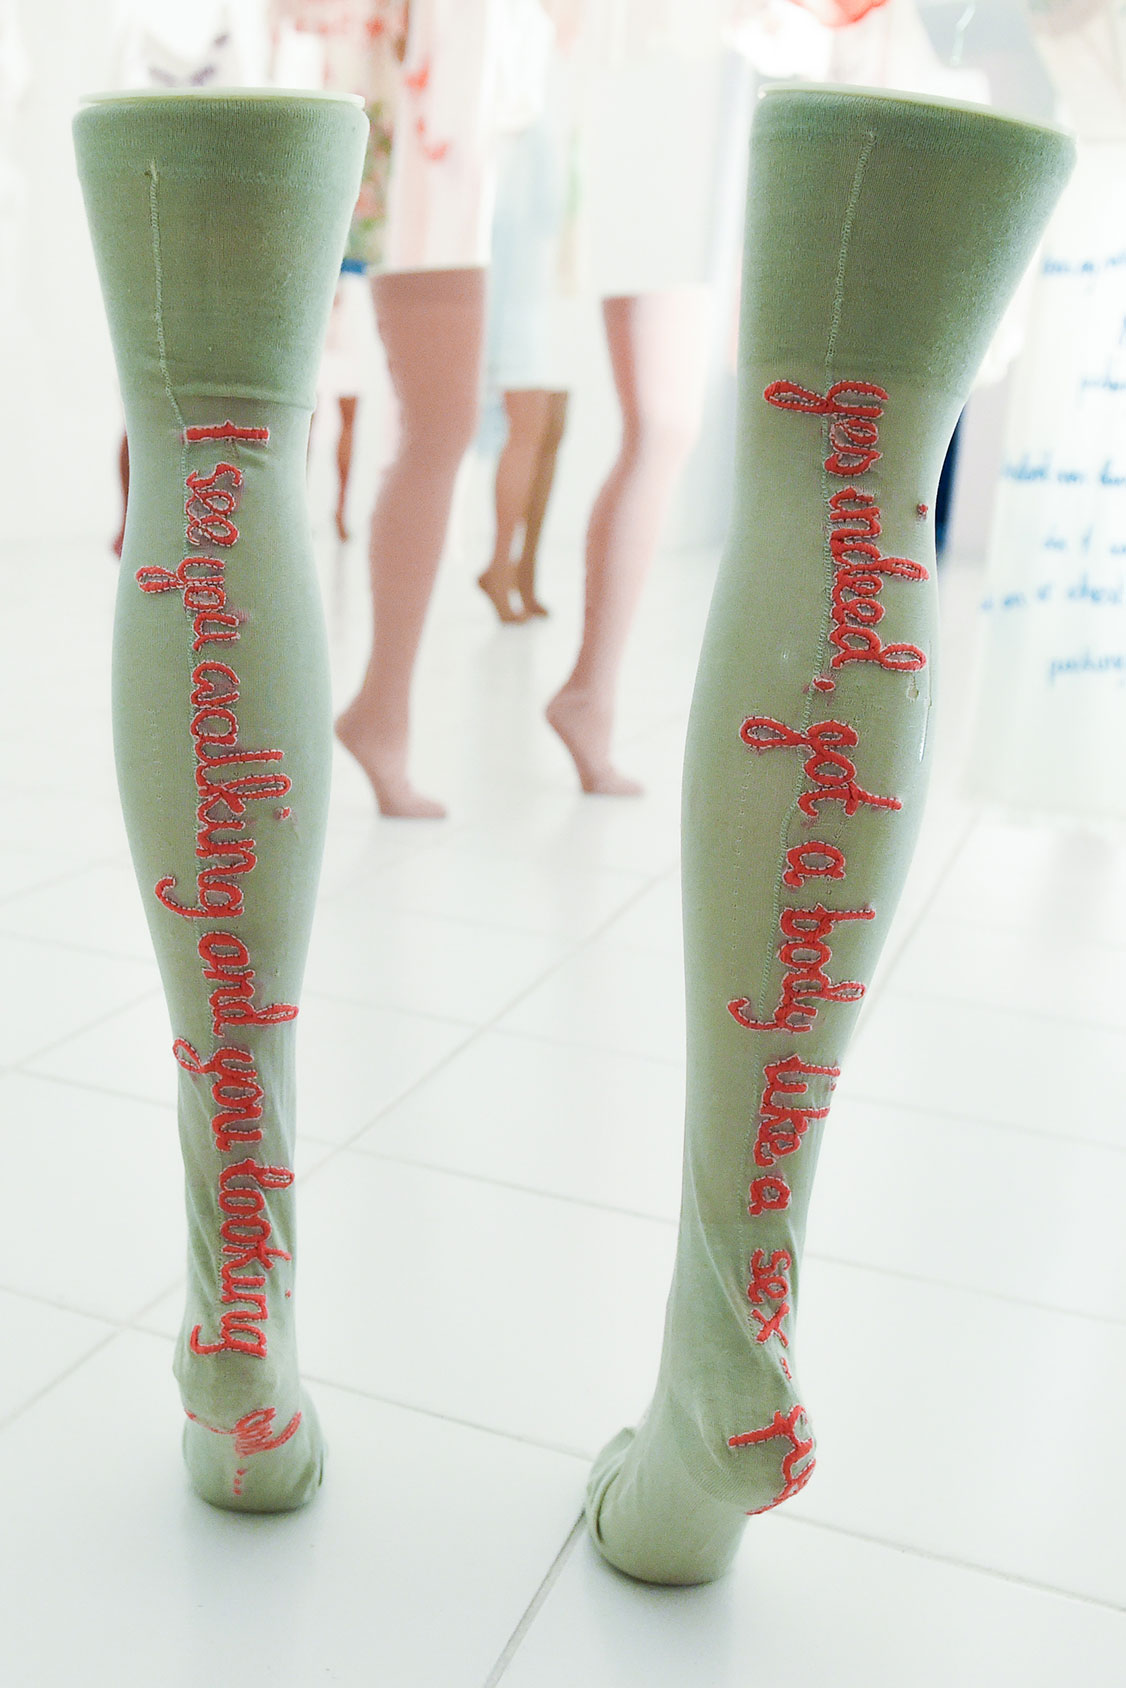 Embroidered vintage nylons with rap lyrics as sculpture